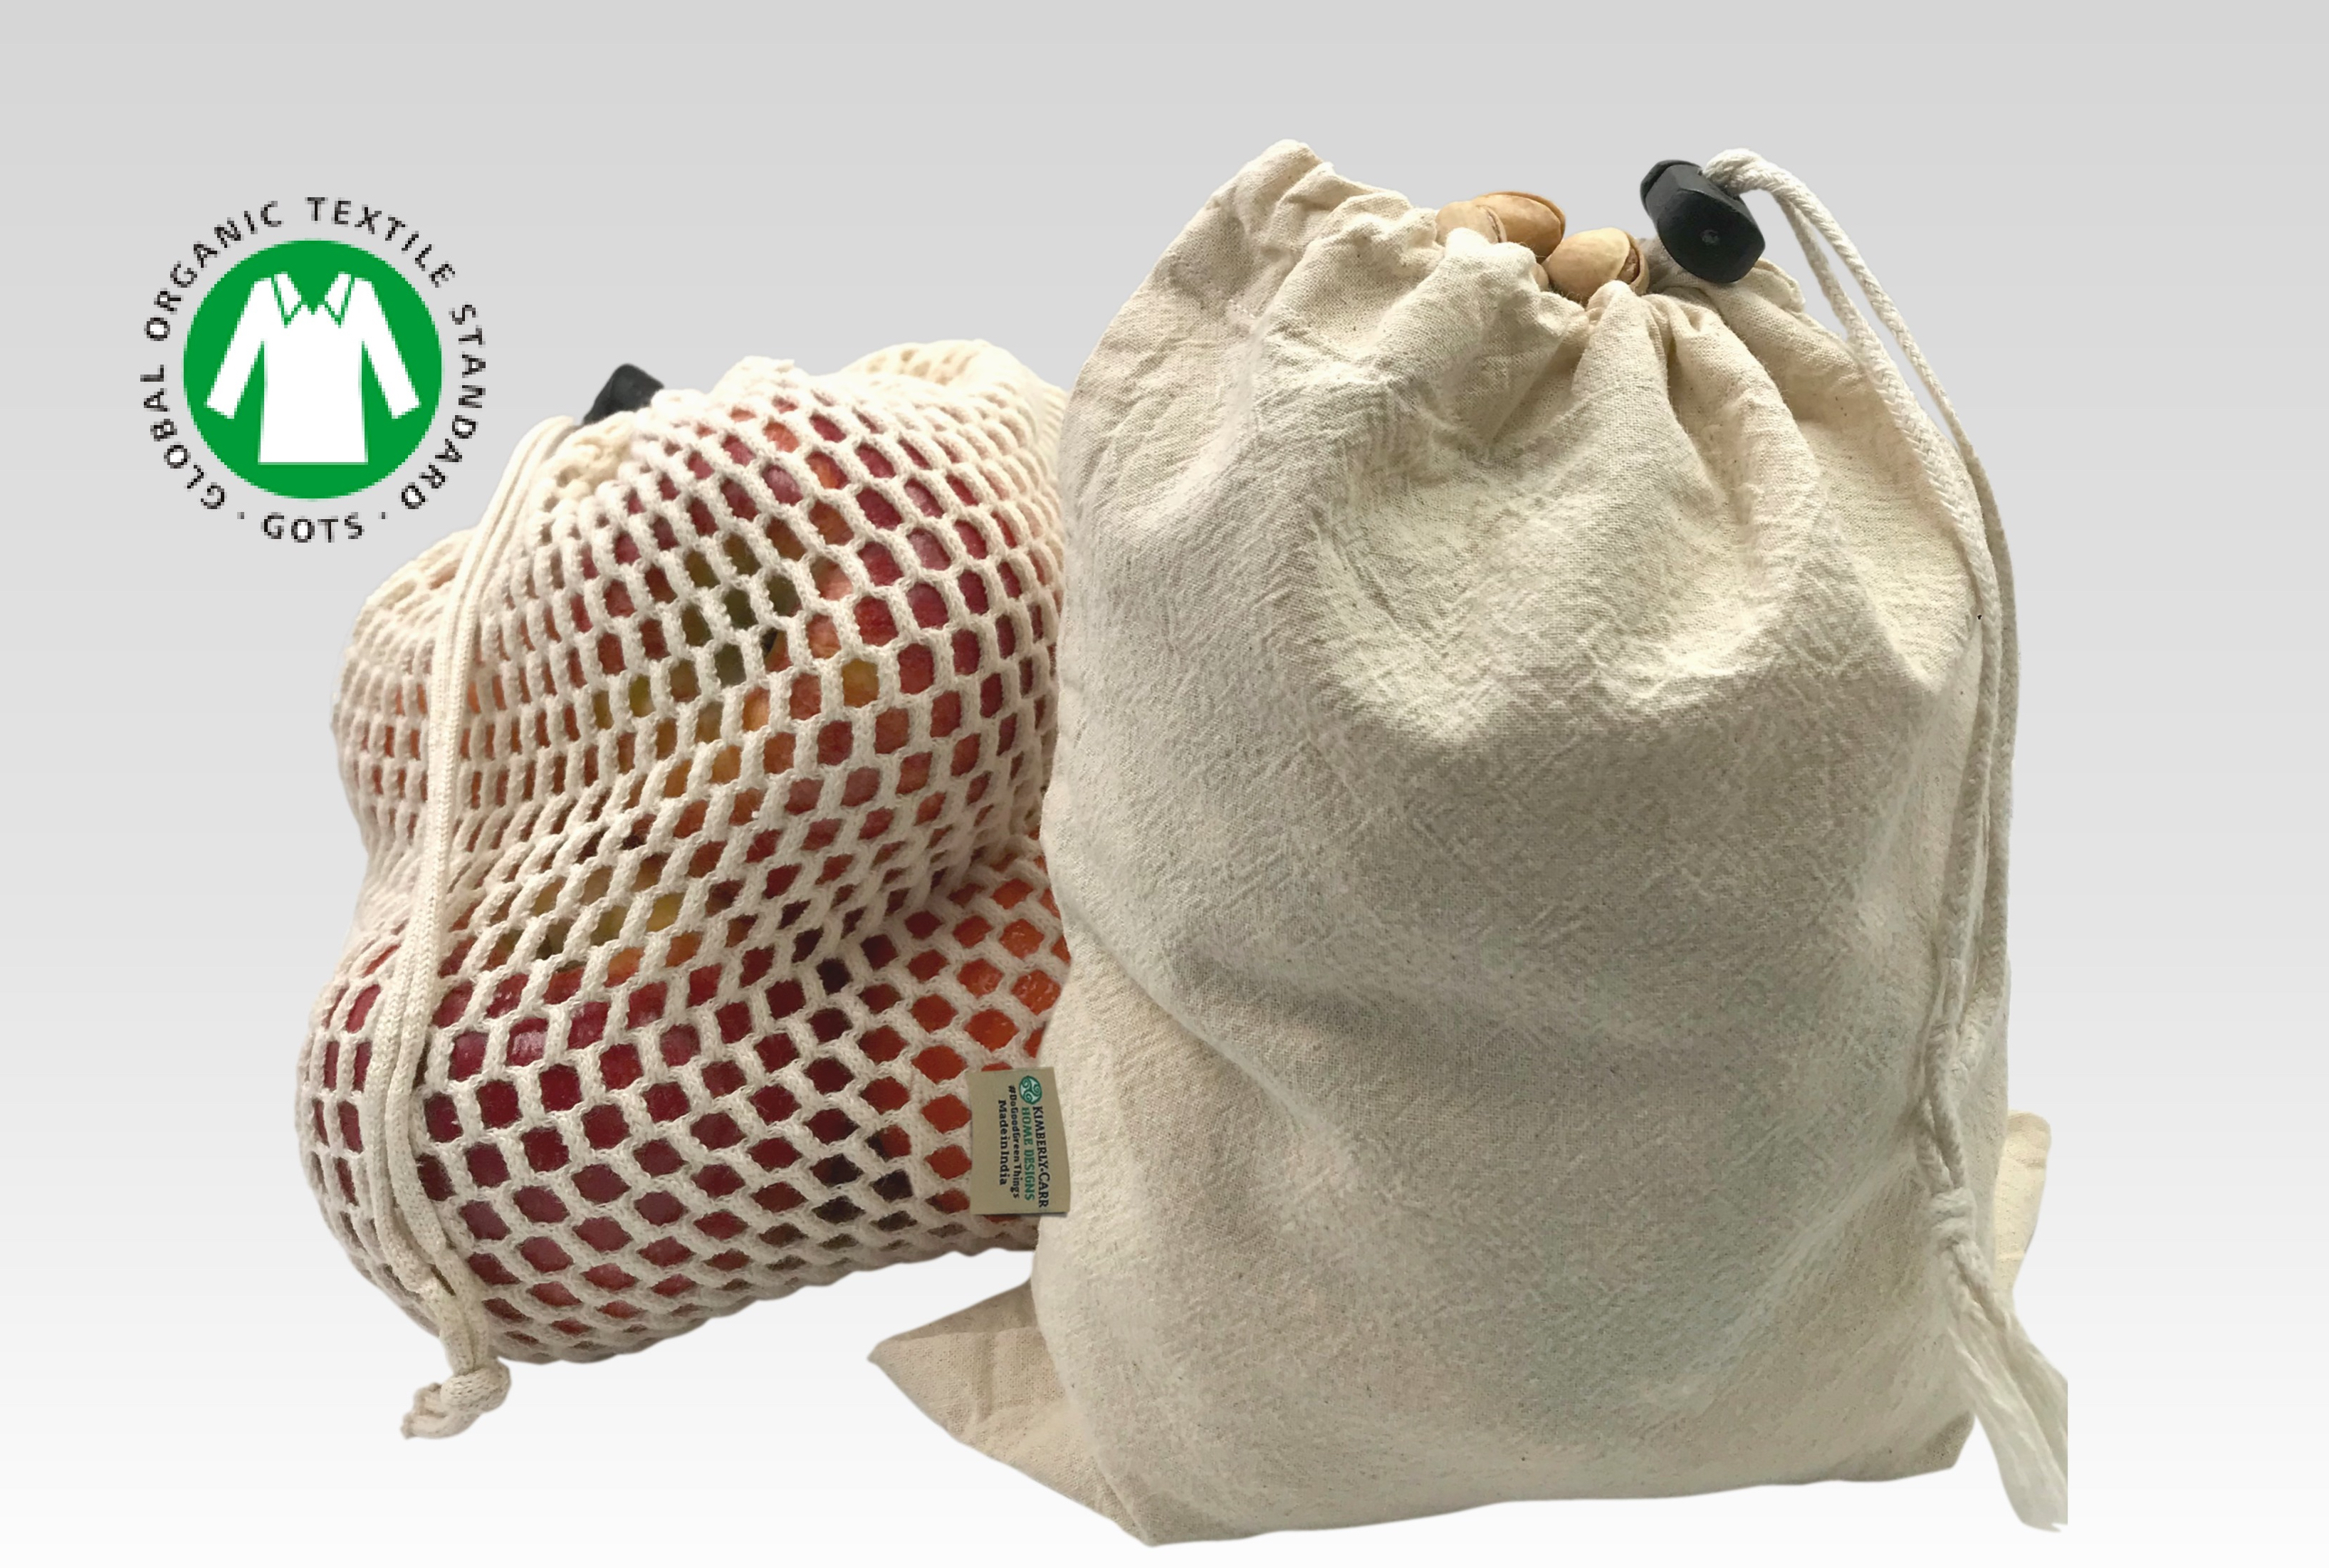 organic cotton mesh and muslin reusable produce bags filled with apples and pistachios